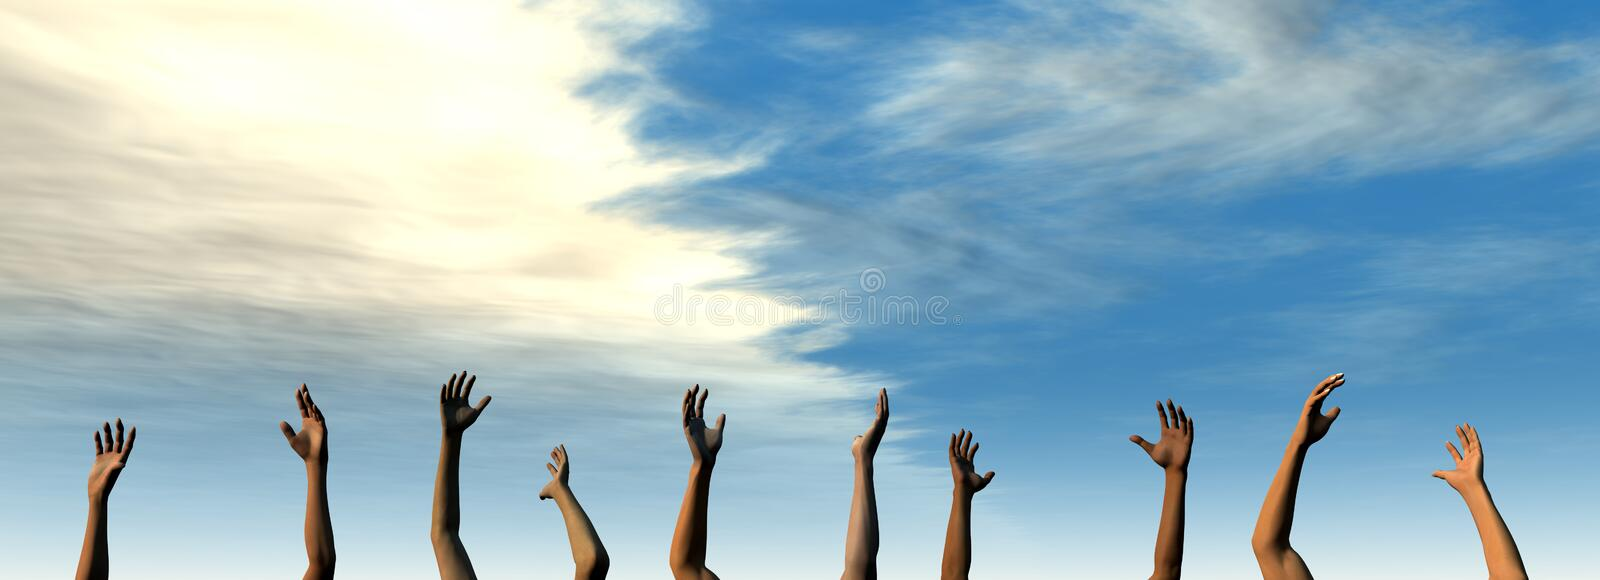 Raise Your Hands - Summer Sky Royalty Free Stock Photography